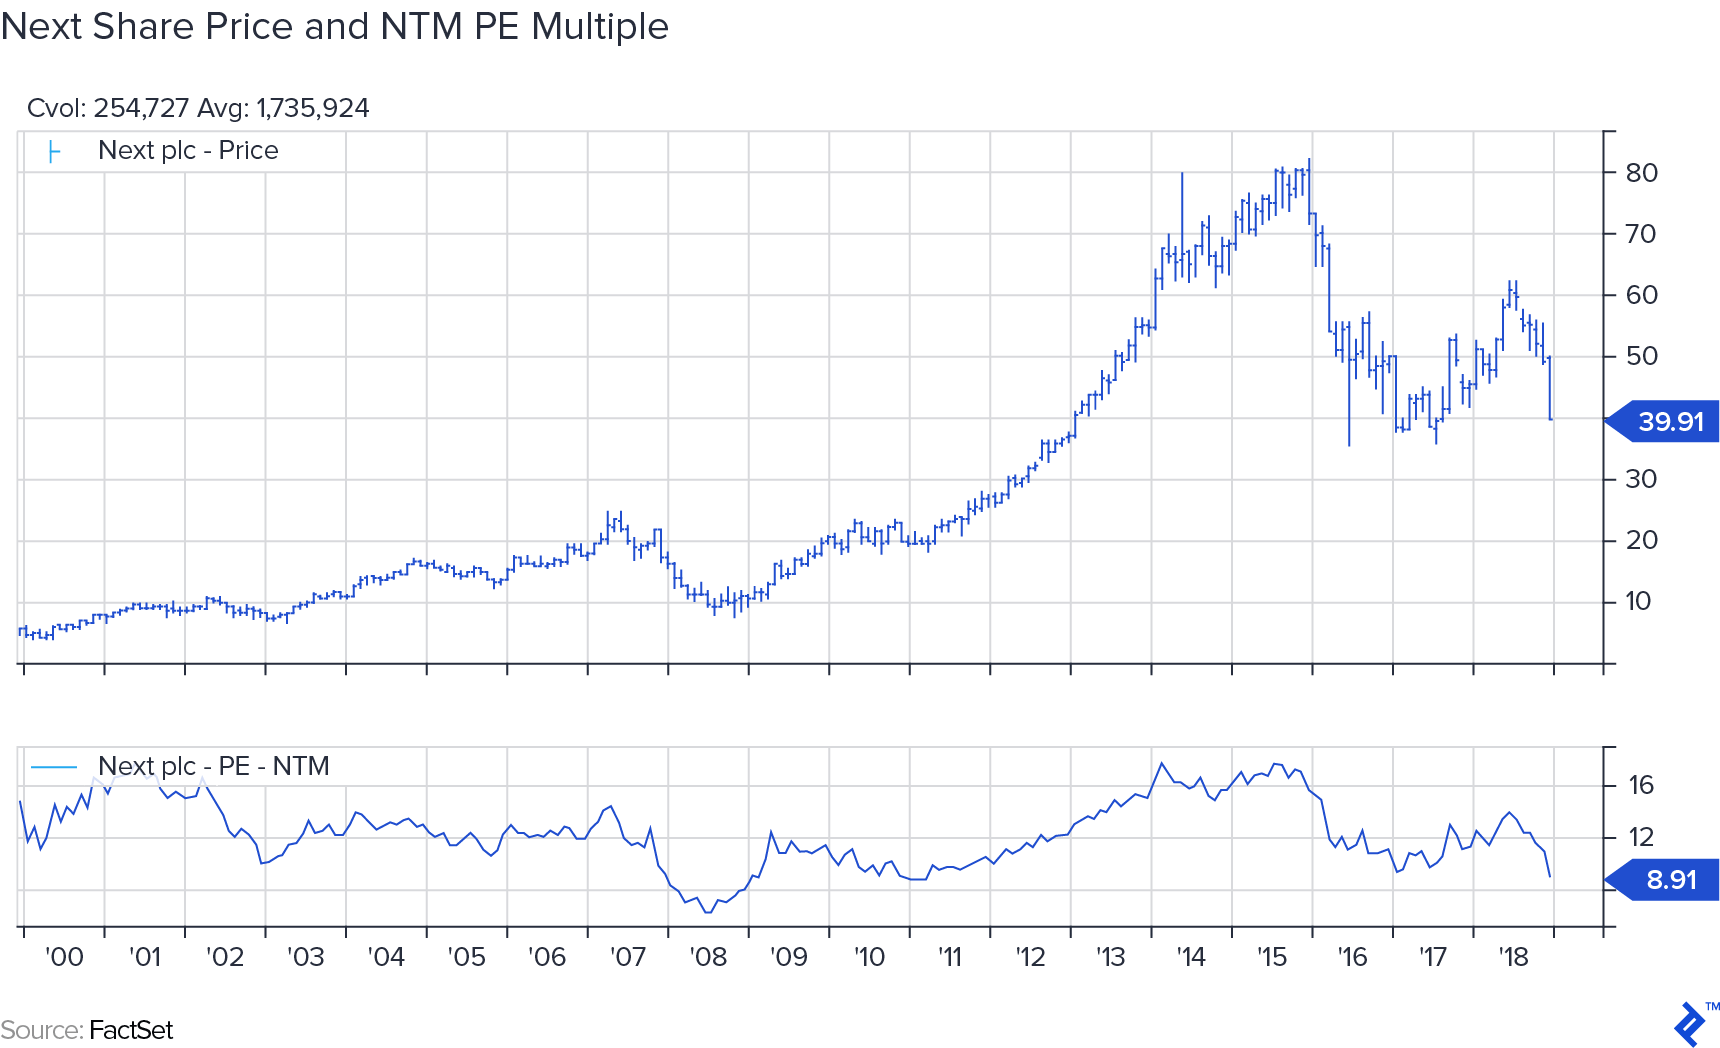 Next share price and NTM PE multiple